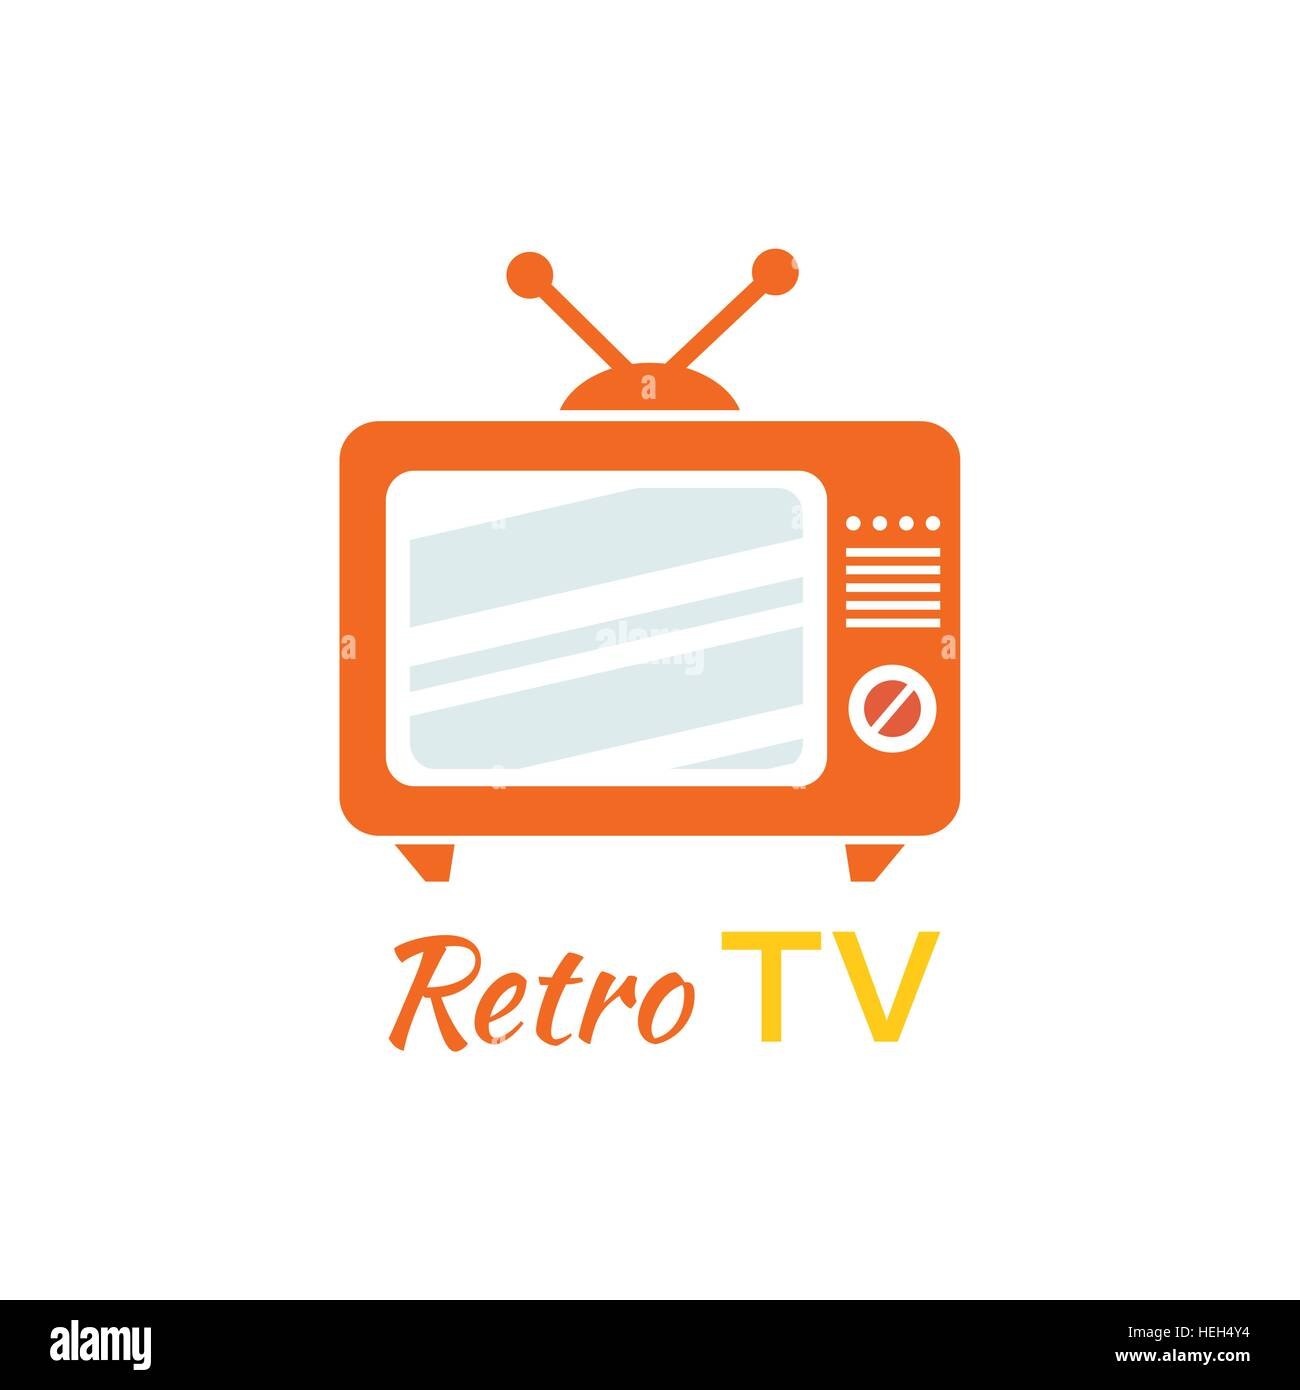 Retro tv logo design flat icon. Vintage tv, old tv, retro television, television antenna, screen tv logo, old media Stock Vector